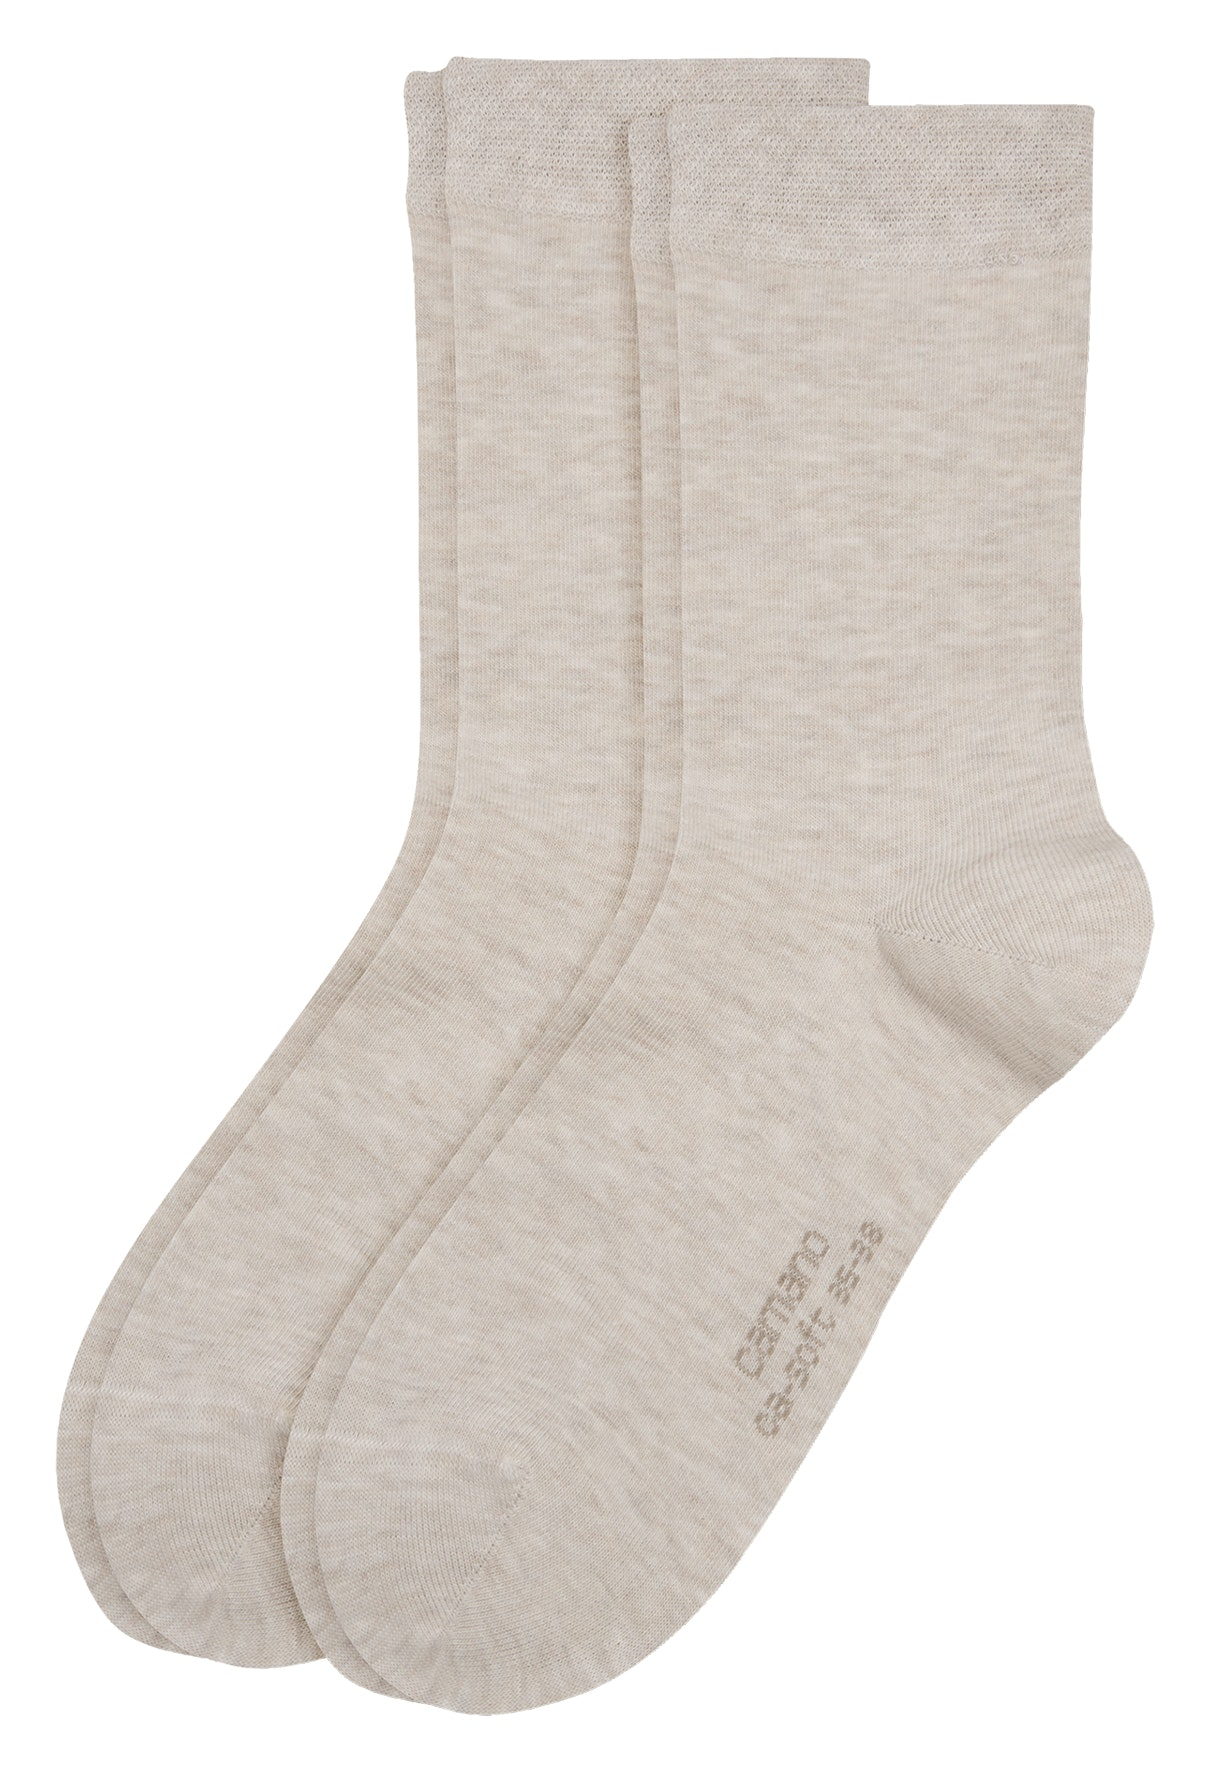 CA-SOFT women socks 2p